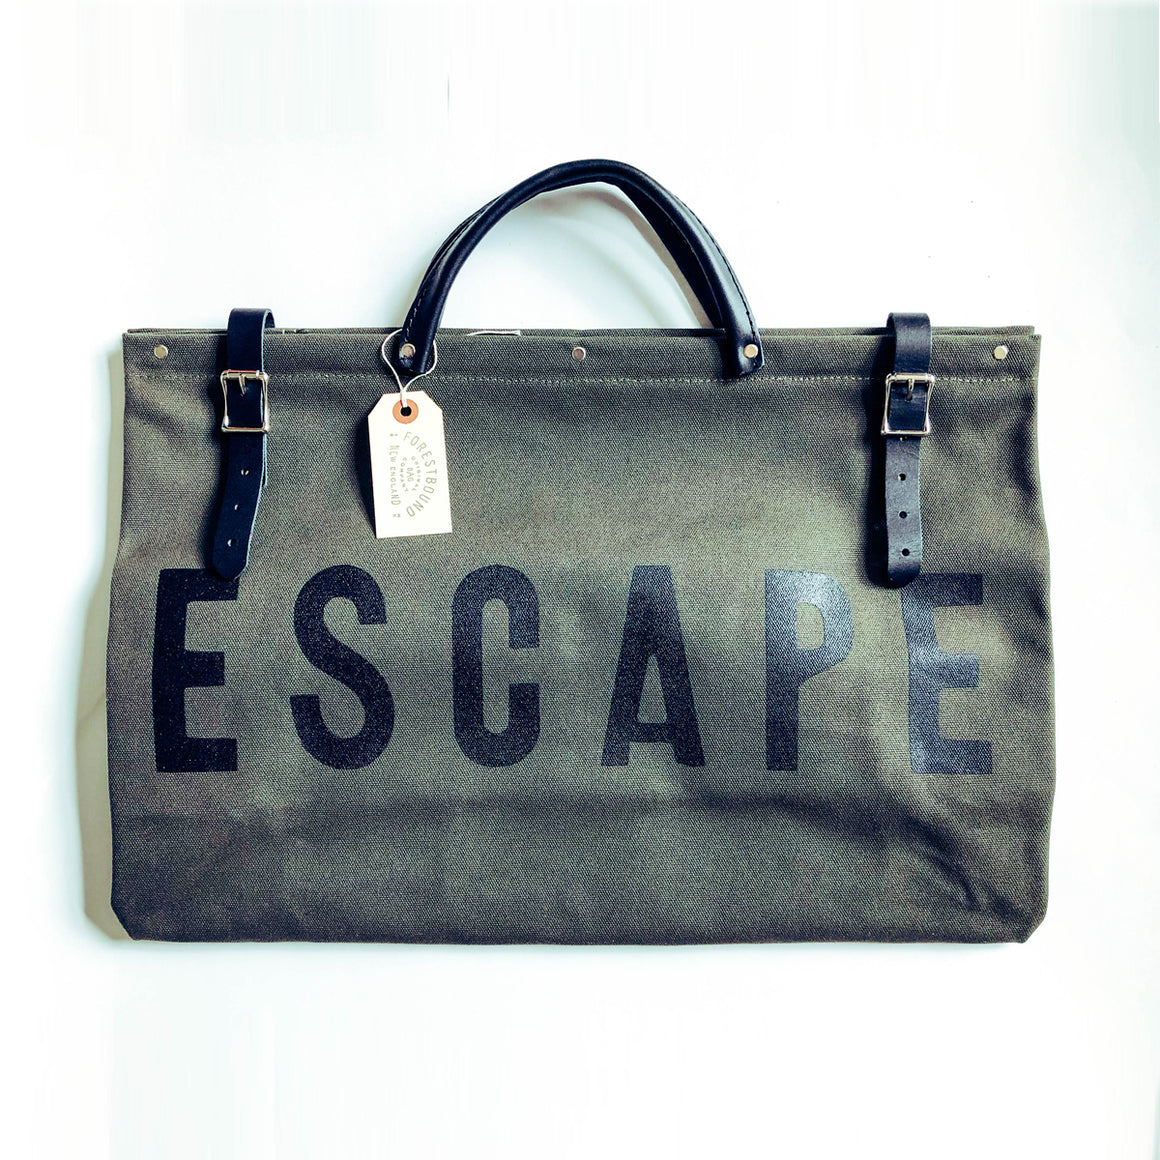 ESCAPE Canvas Utility Bag - Olive